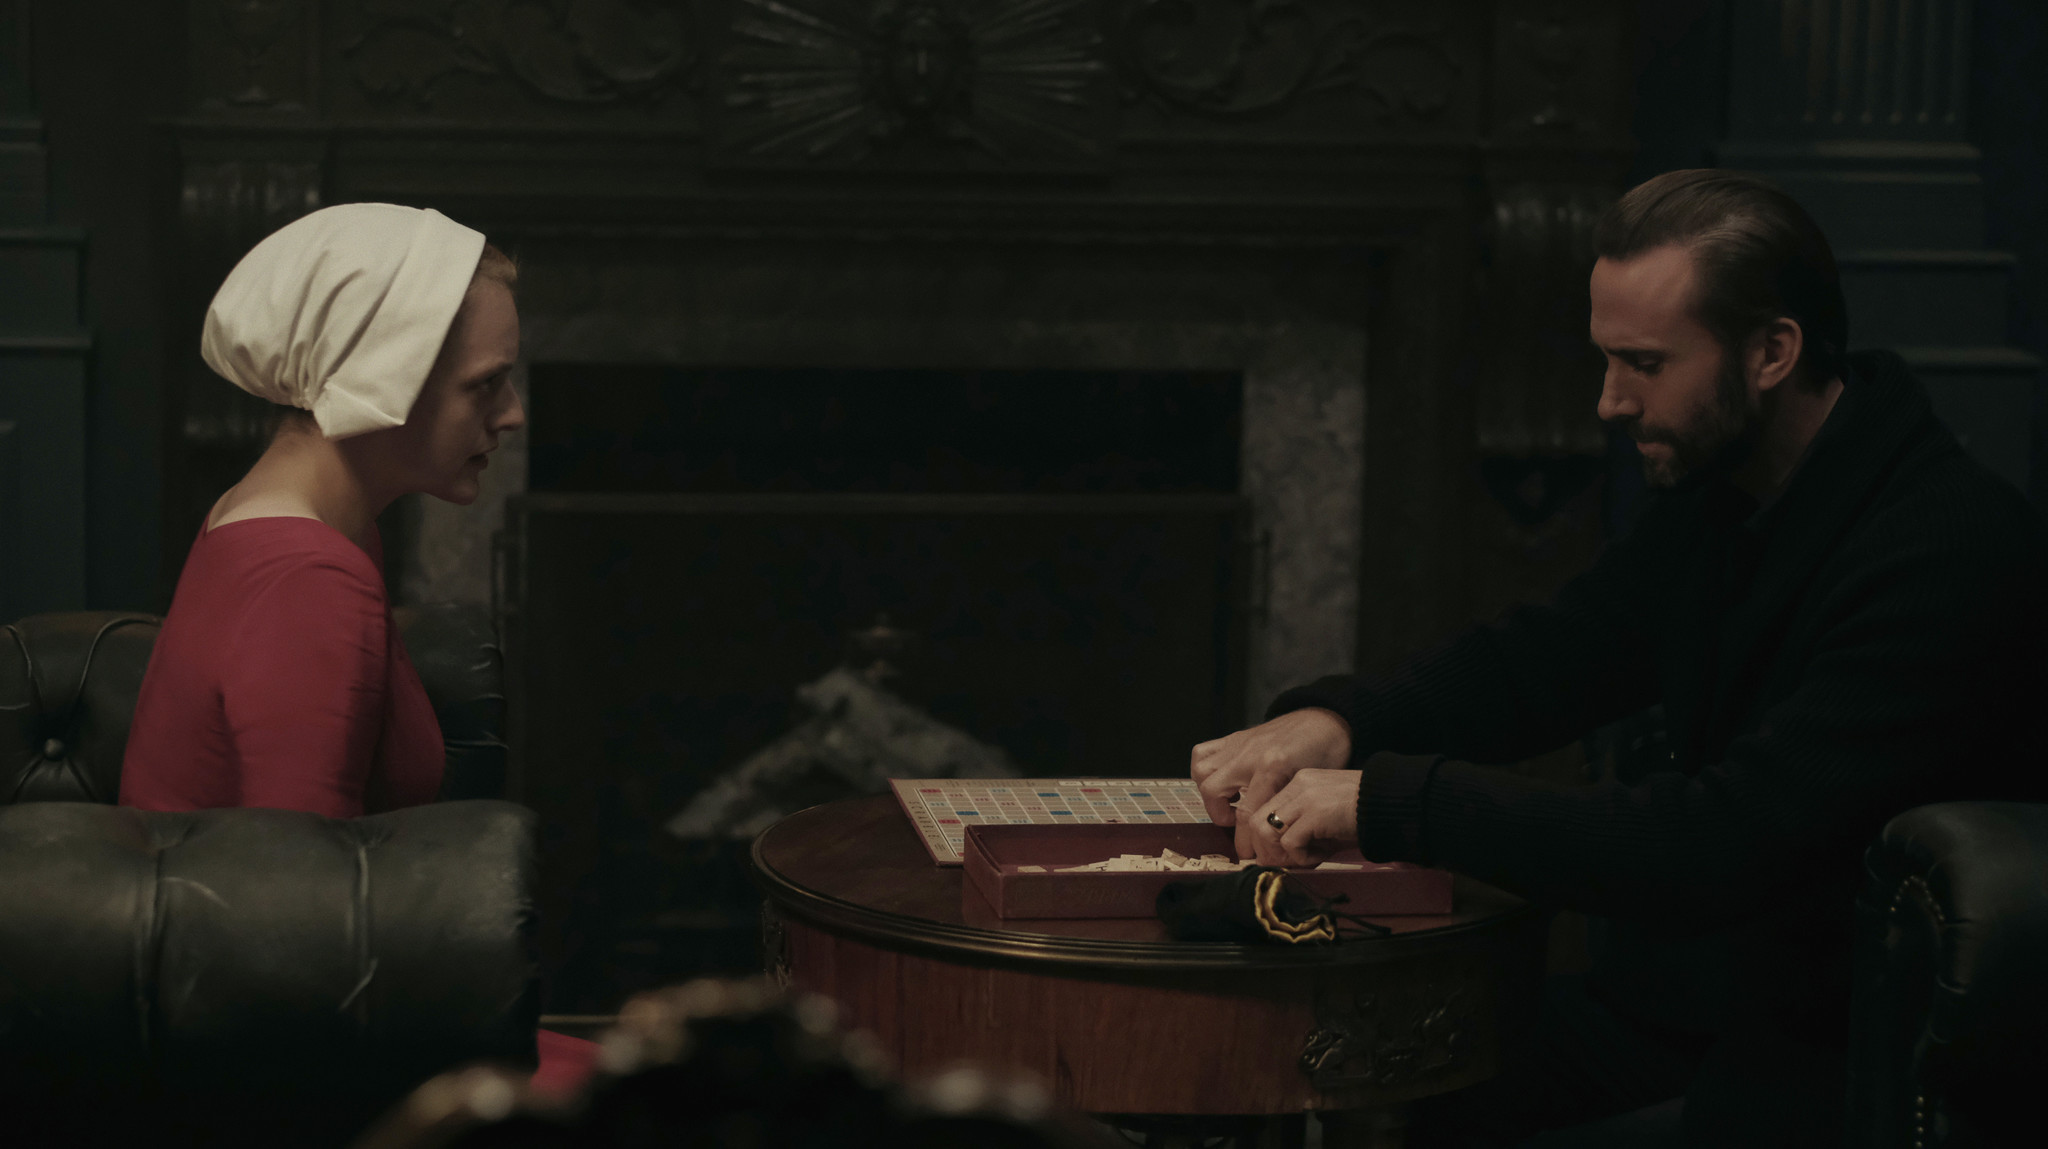 """Elisabeth Moss and Joseph Fiennes play a monumental game of Scrabble in """"The Handmaid's Tale."""""""